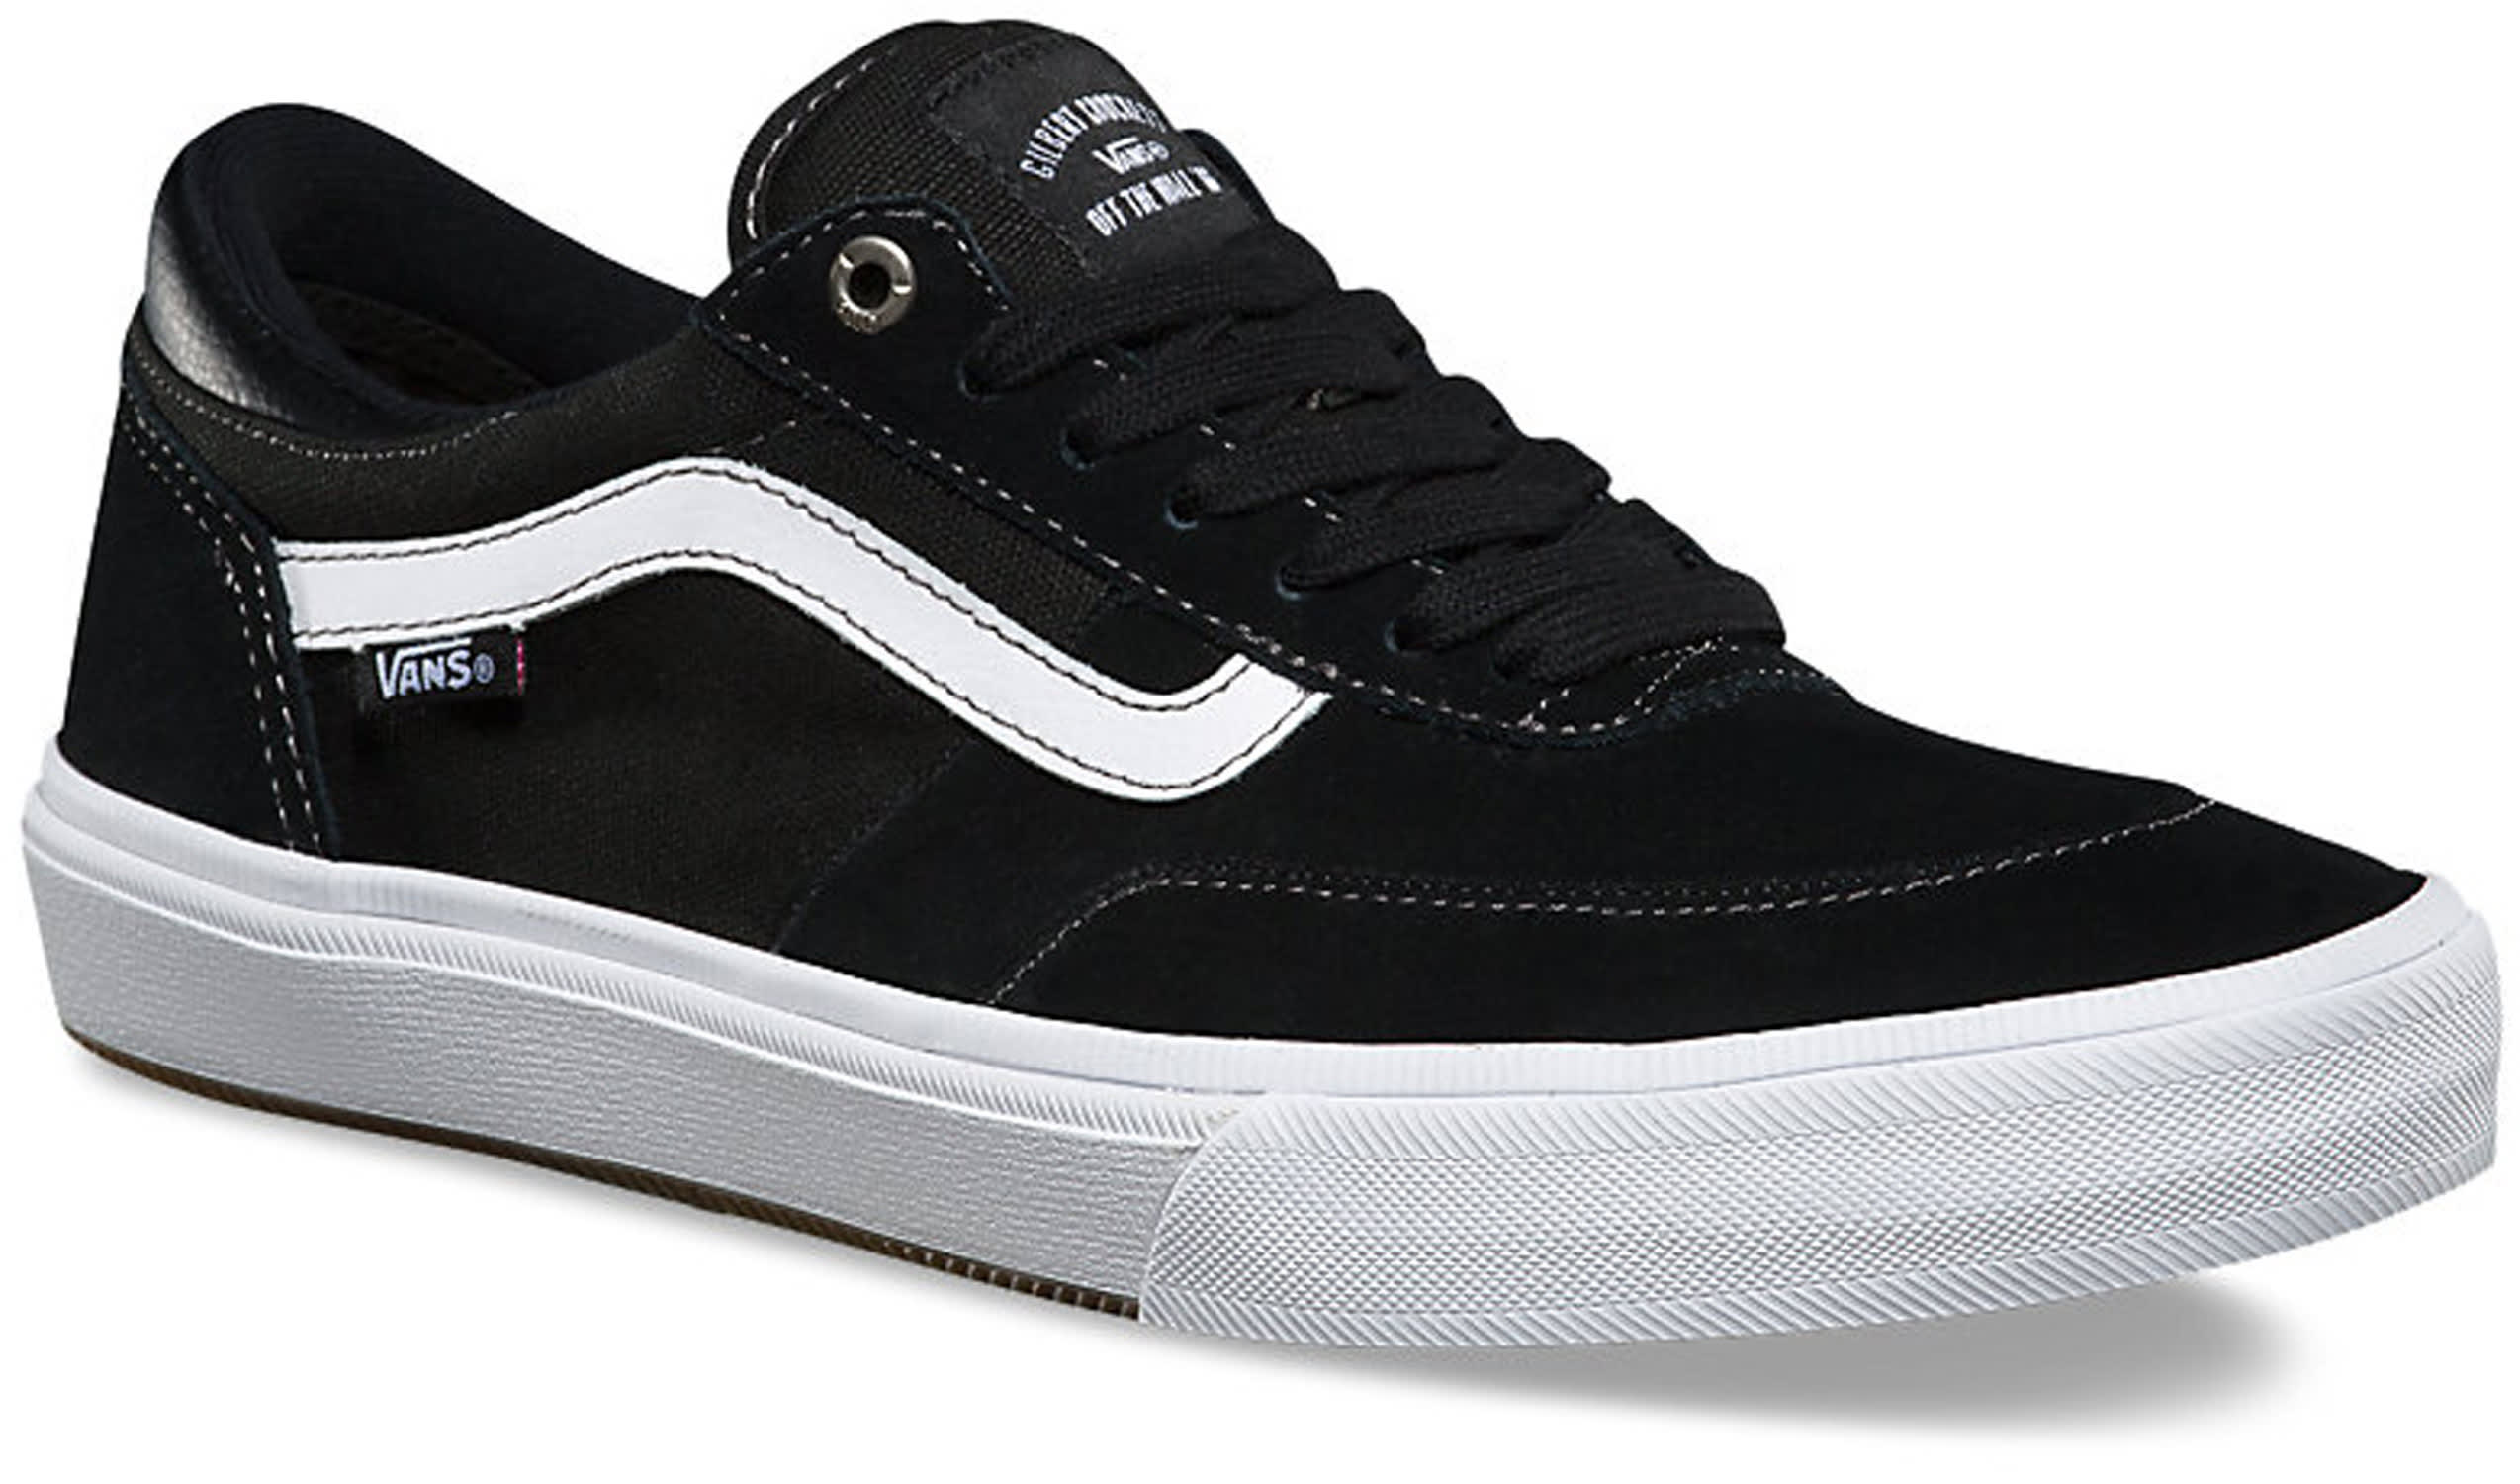 b5ac01834dde Vans Gilbert Crockett Pro 2 Skate Shoes - thumbnail 2